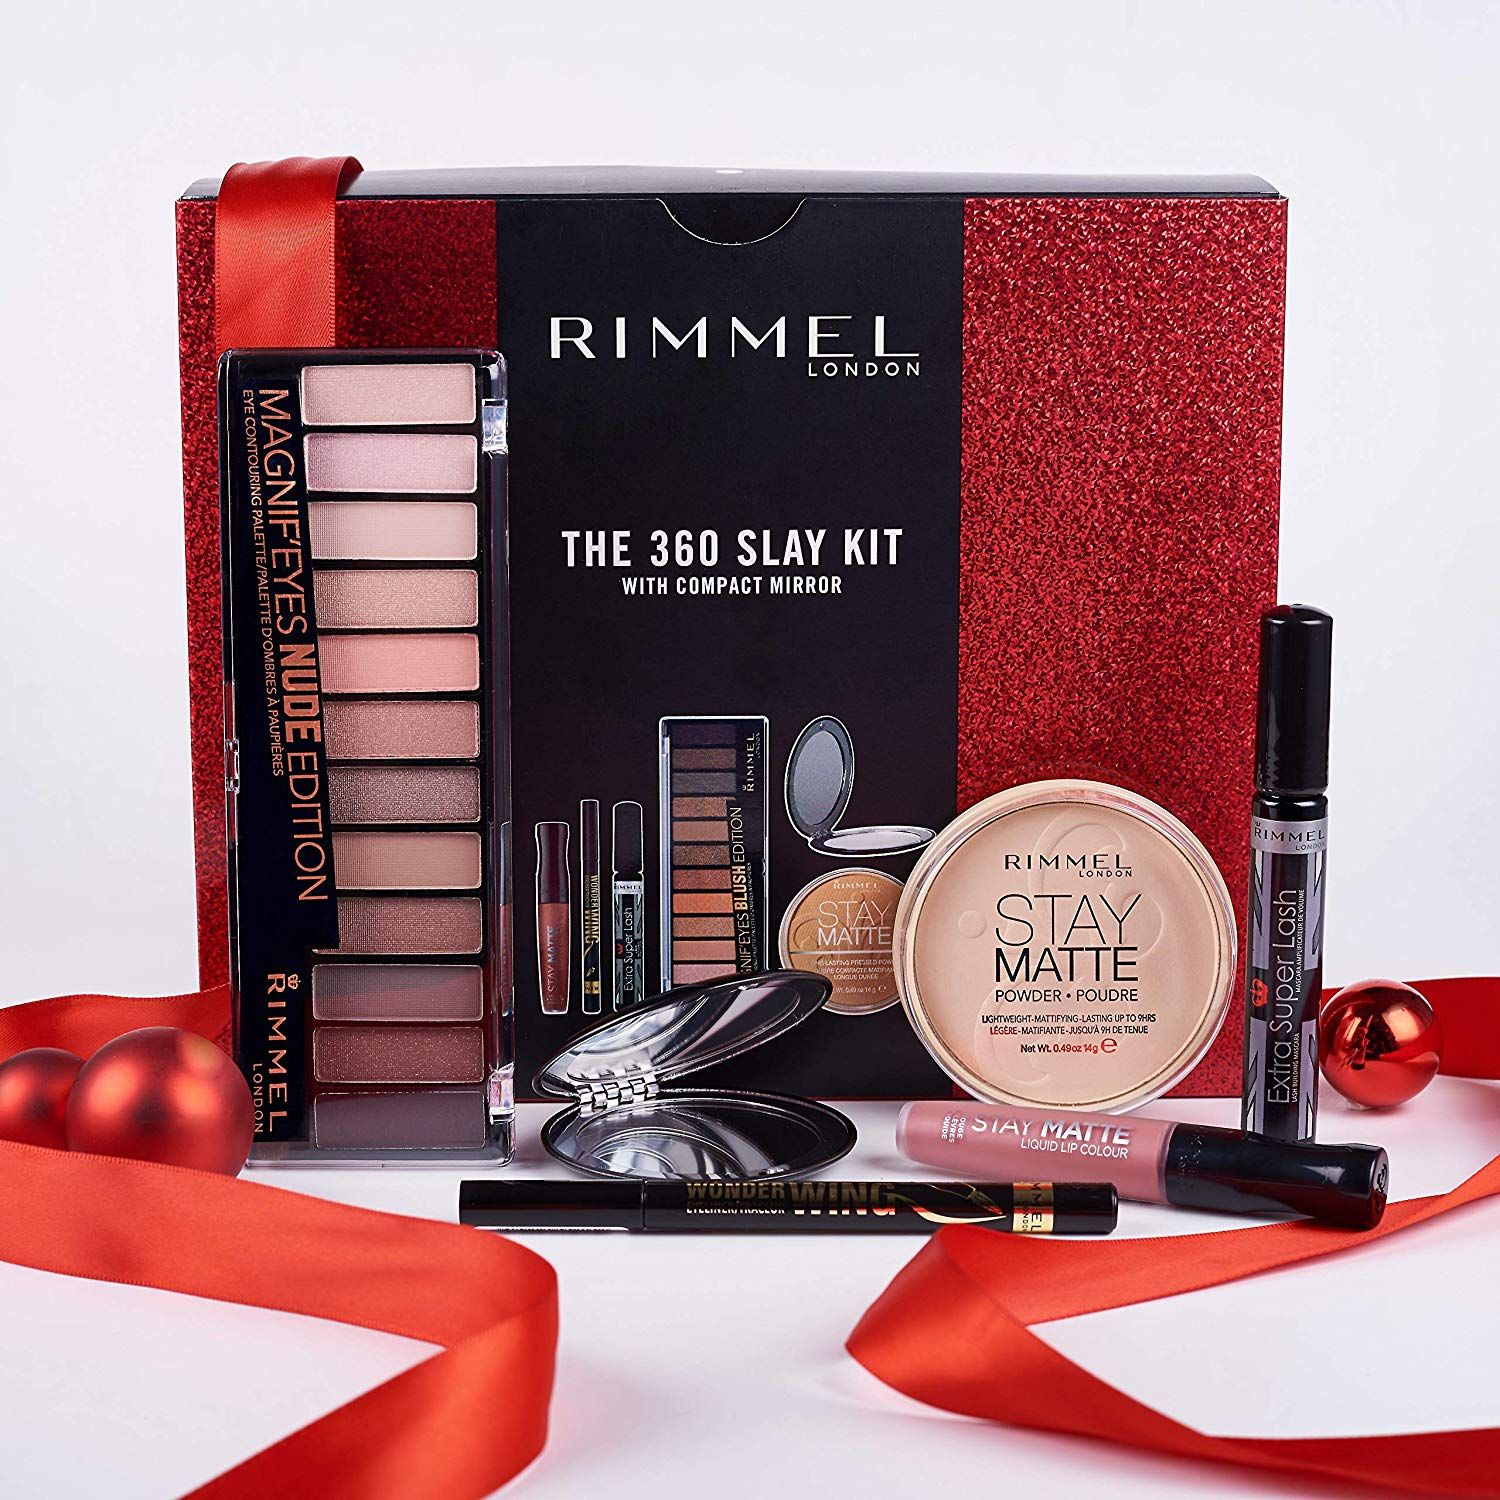 30ed306906b Eyeshadow Palette · Mascara · Lashes · Mothers day gifts | Rimmel The 360  Slay Kit Gift Set (includes Stay Matte Powder